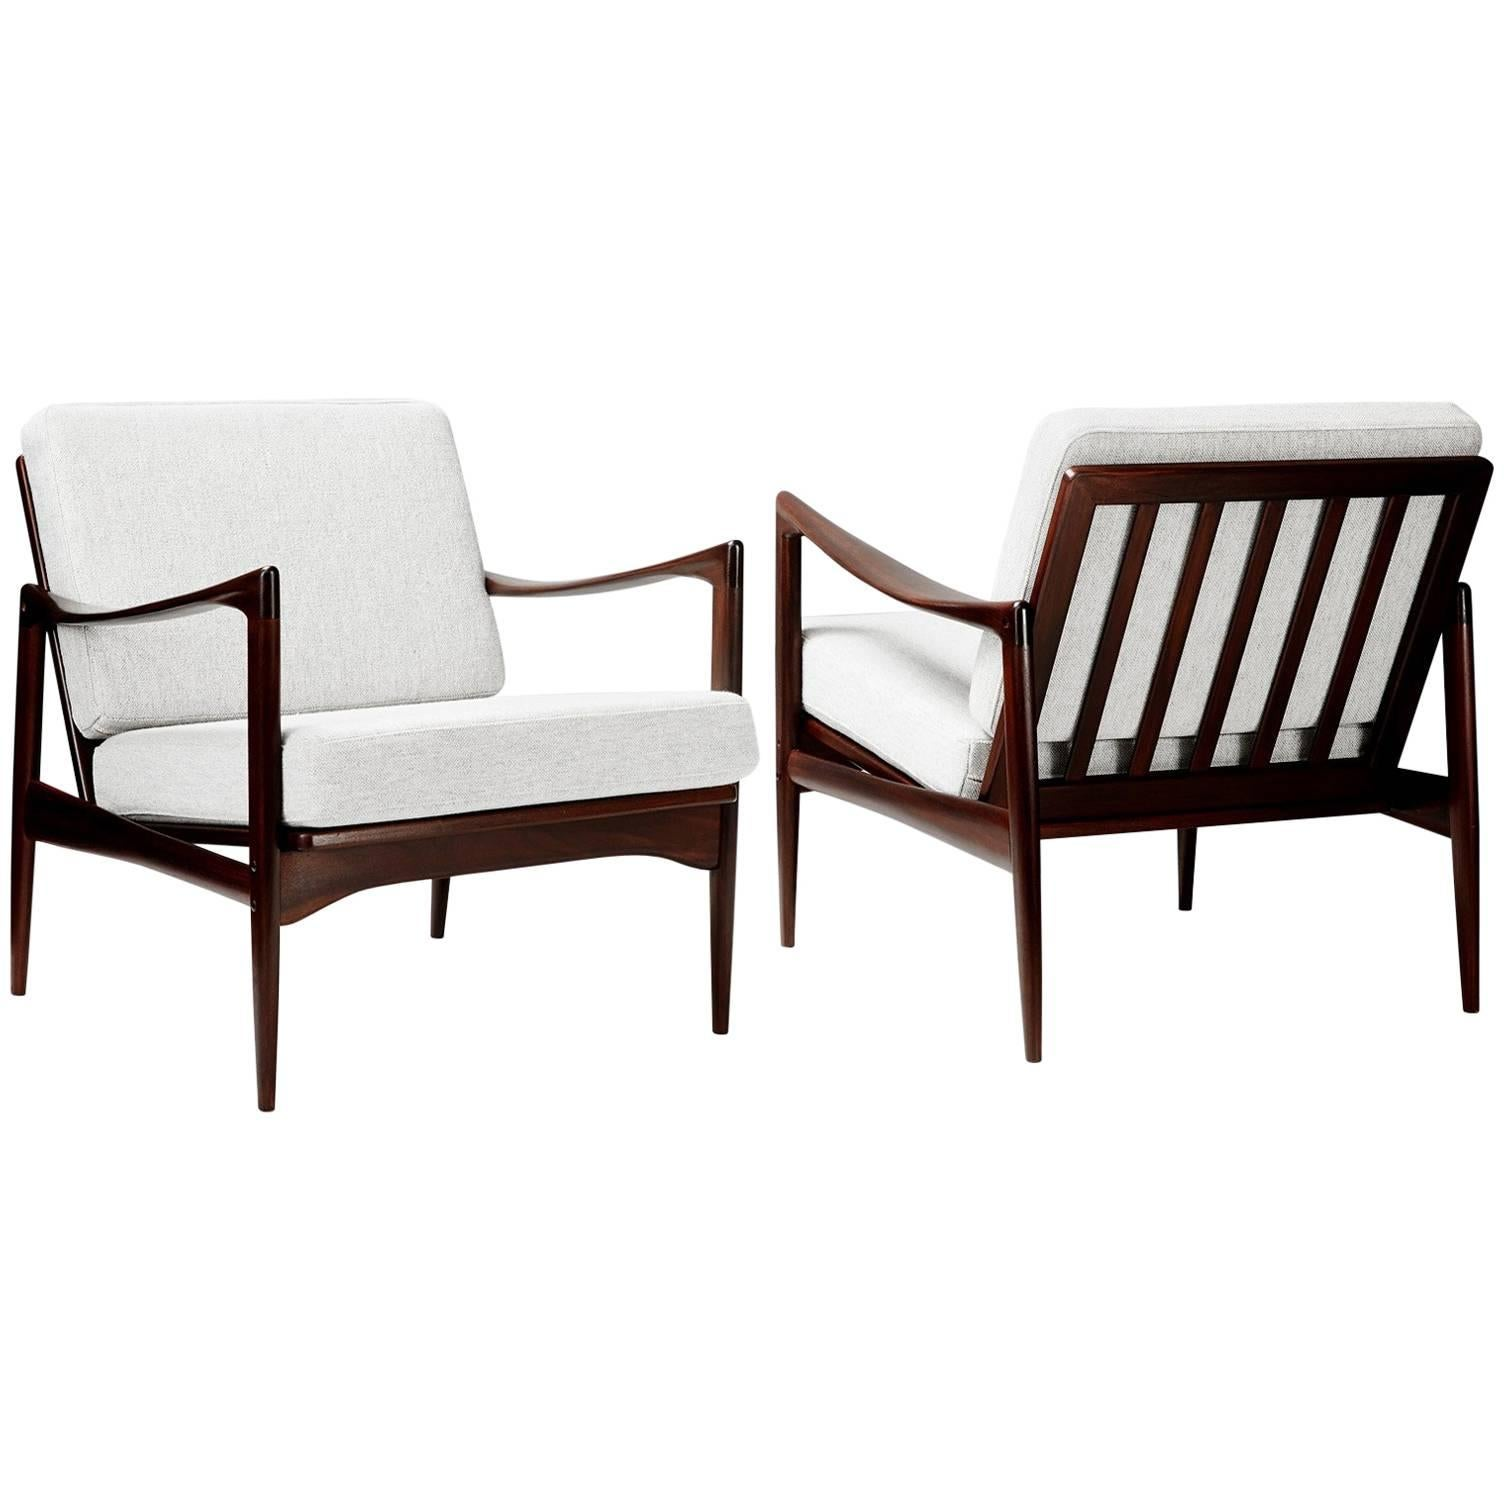 High Quality Pair Of Ib Kofod Larsen Candidate Chairs, 1960s 1